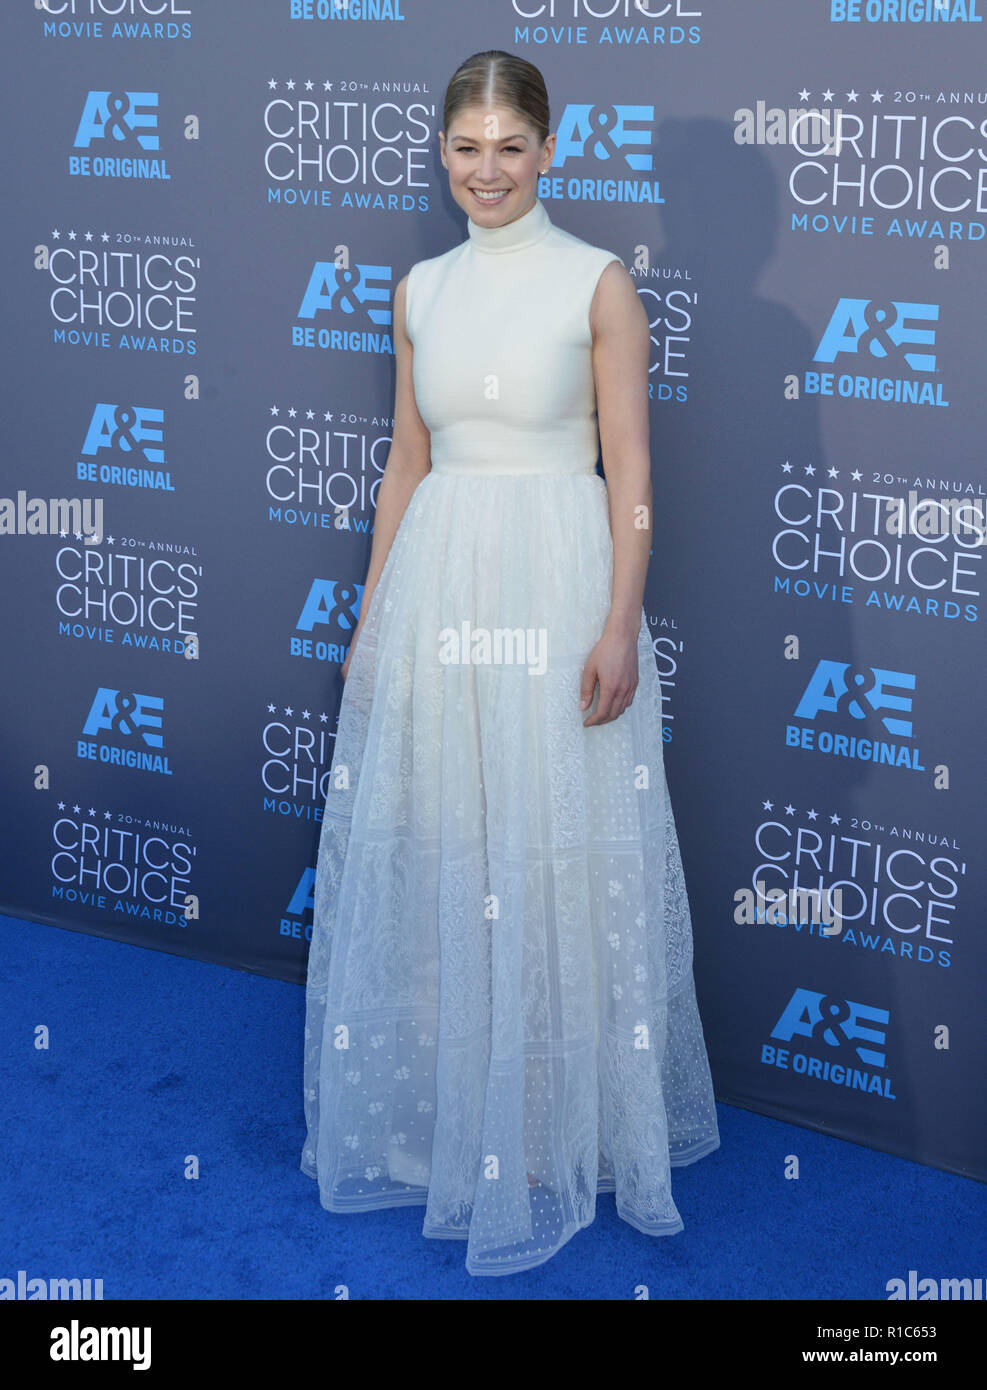 Rosamund Pike 117 at the 2015 Critics' Choice Movie Awards at the The Palladium theatre in Los Angeles. January 15, 2015Rosamund Pike 117  Event in Hollywood Life - California, Red Carpet Event, USA, Film Industry, Celebrities, Photography, Bestof, Arts Culture and Entertainment, Topix Celebrities fashion, Best of, Hollywood Life, Event in Hollywood Life - California, Red Carpet and backstage, movie celebrities, TV celebrities, Music celebrities, Topix, Bestof, Arts Culture and Entertainment, vertical, one person, Photography,   Fashion, full length, 2014 inquiry tsuni@Gamma-USA.com , Credit T Stock Photo